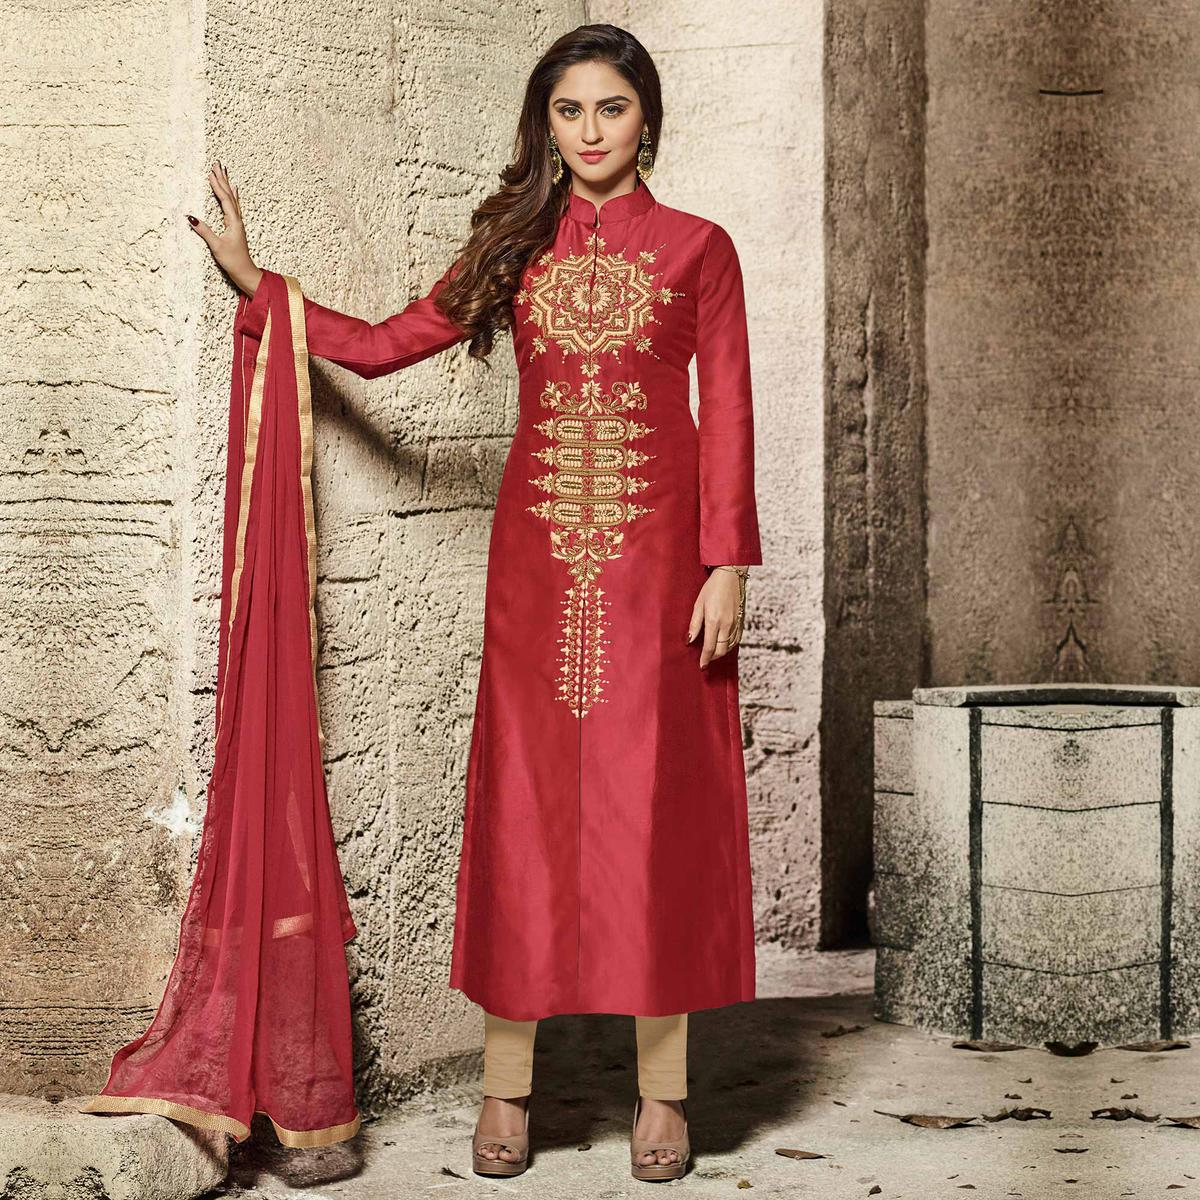 a3845e05df2 Buy Ravishing Red Designer Embroidered Glass Cotton Salwar Suit online  India